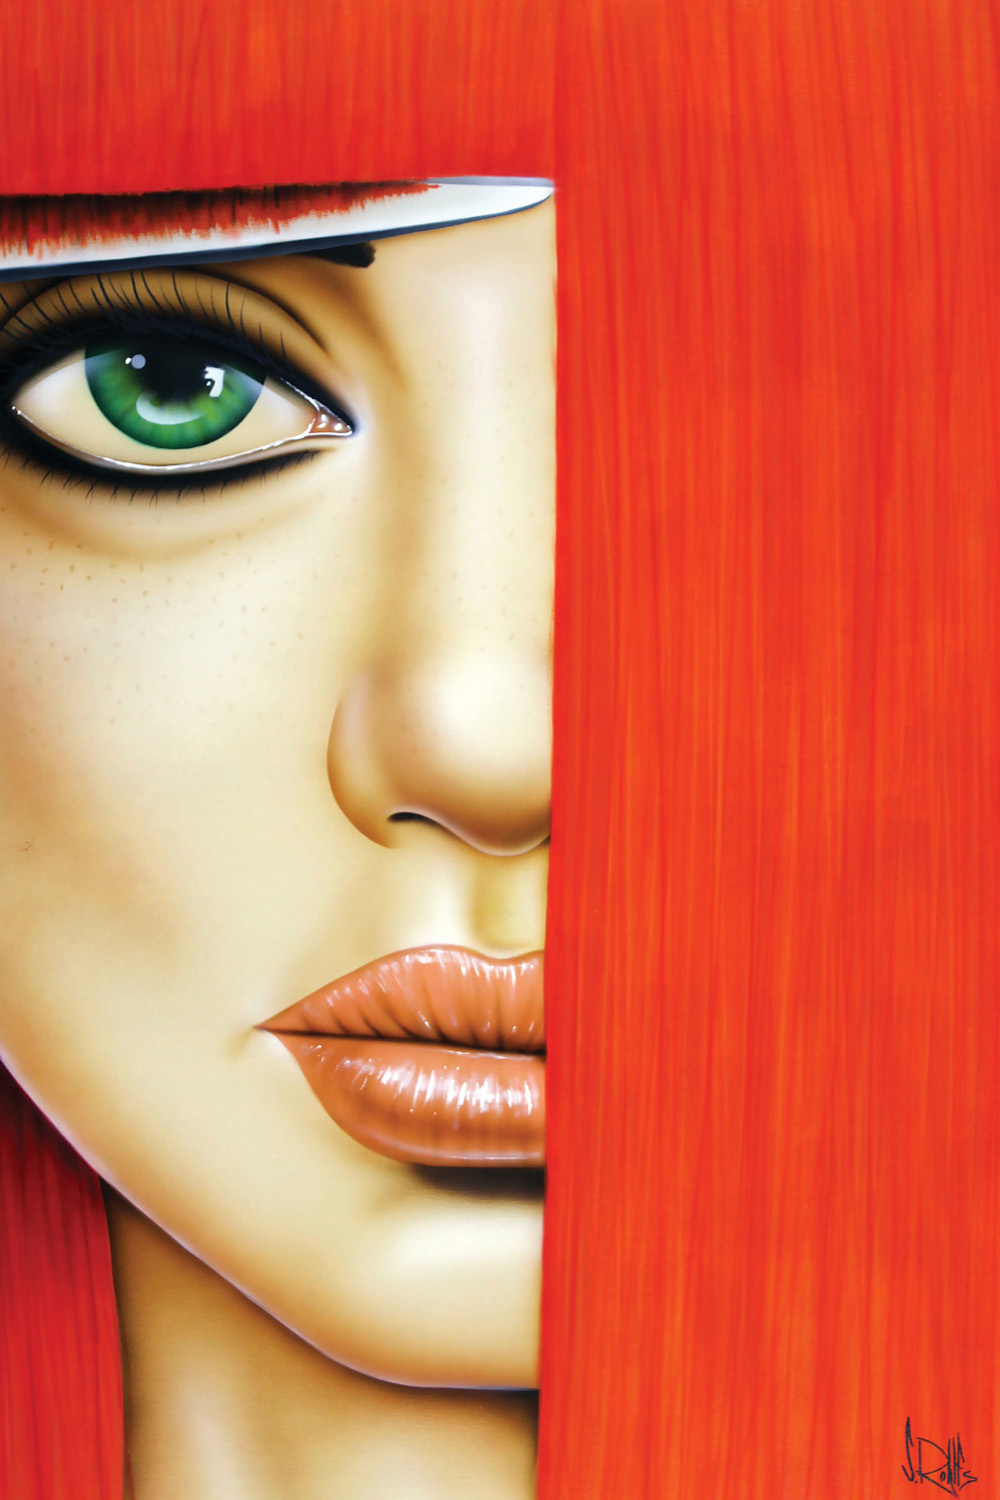 Image of a woman's face with bright red hair and green eyes cutting her bangs with scissors